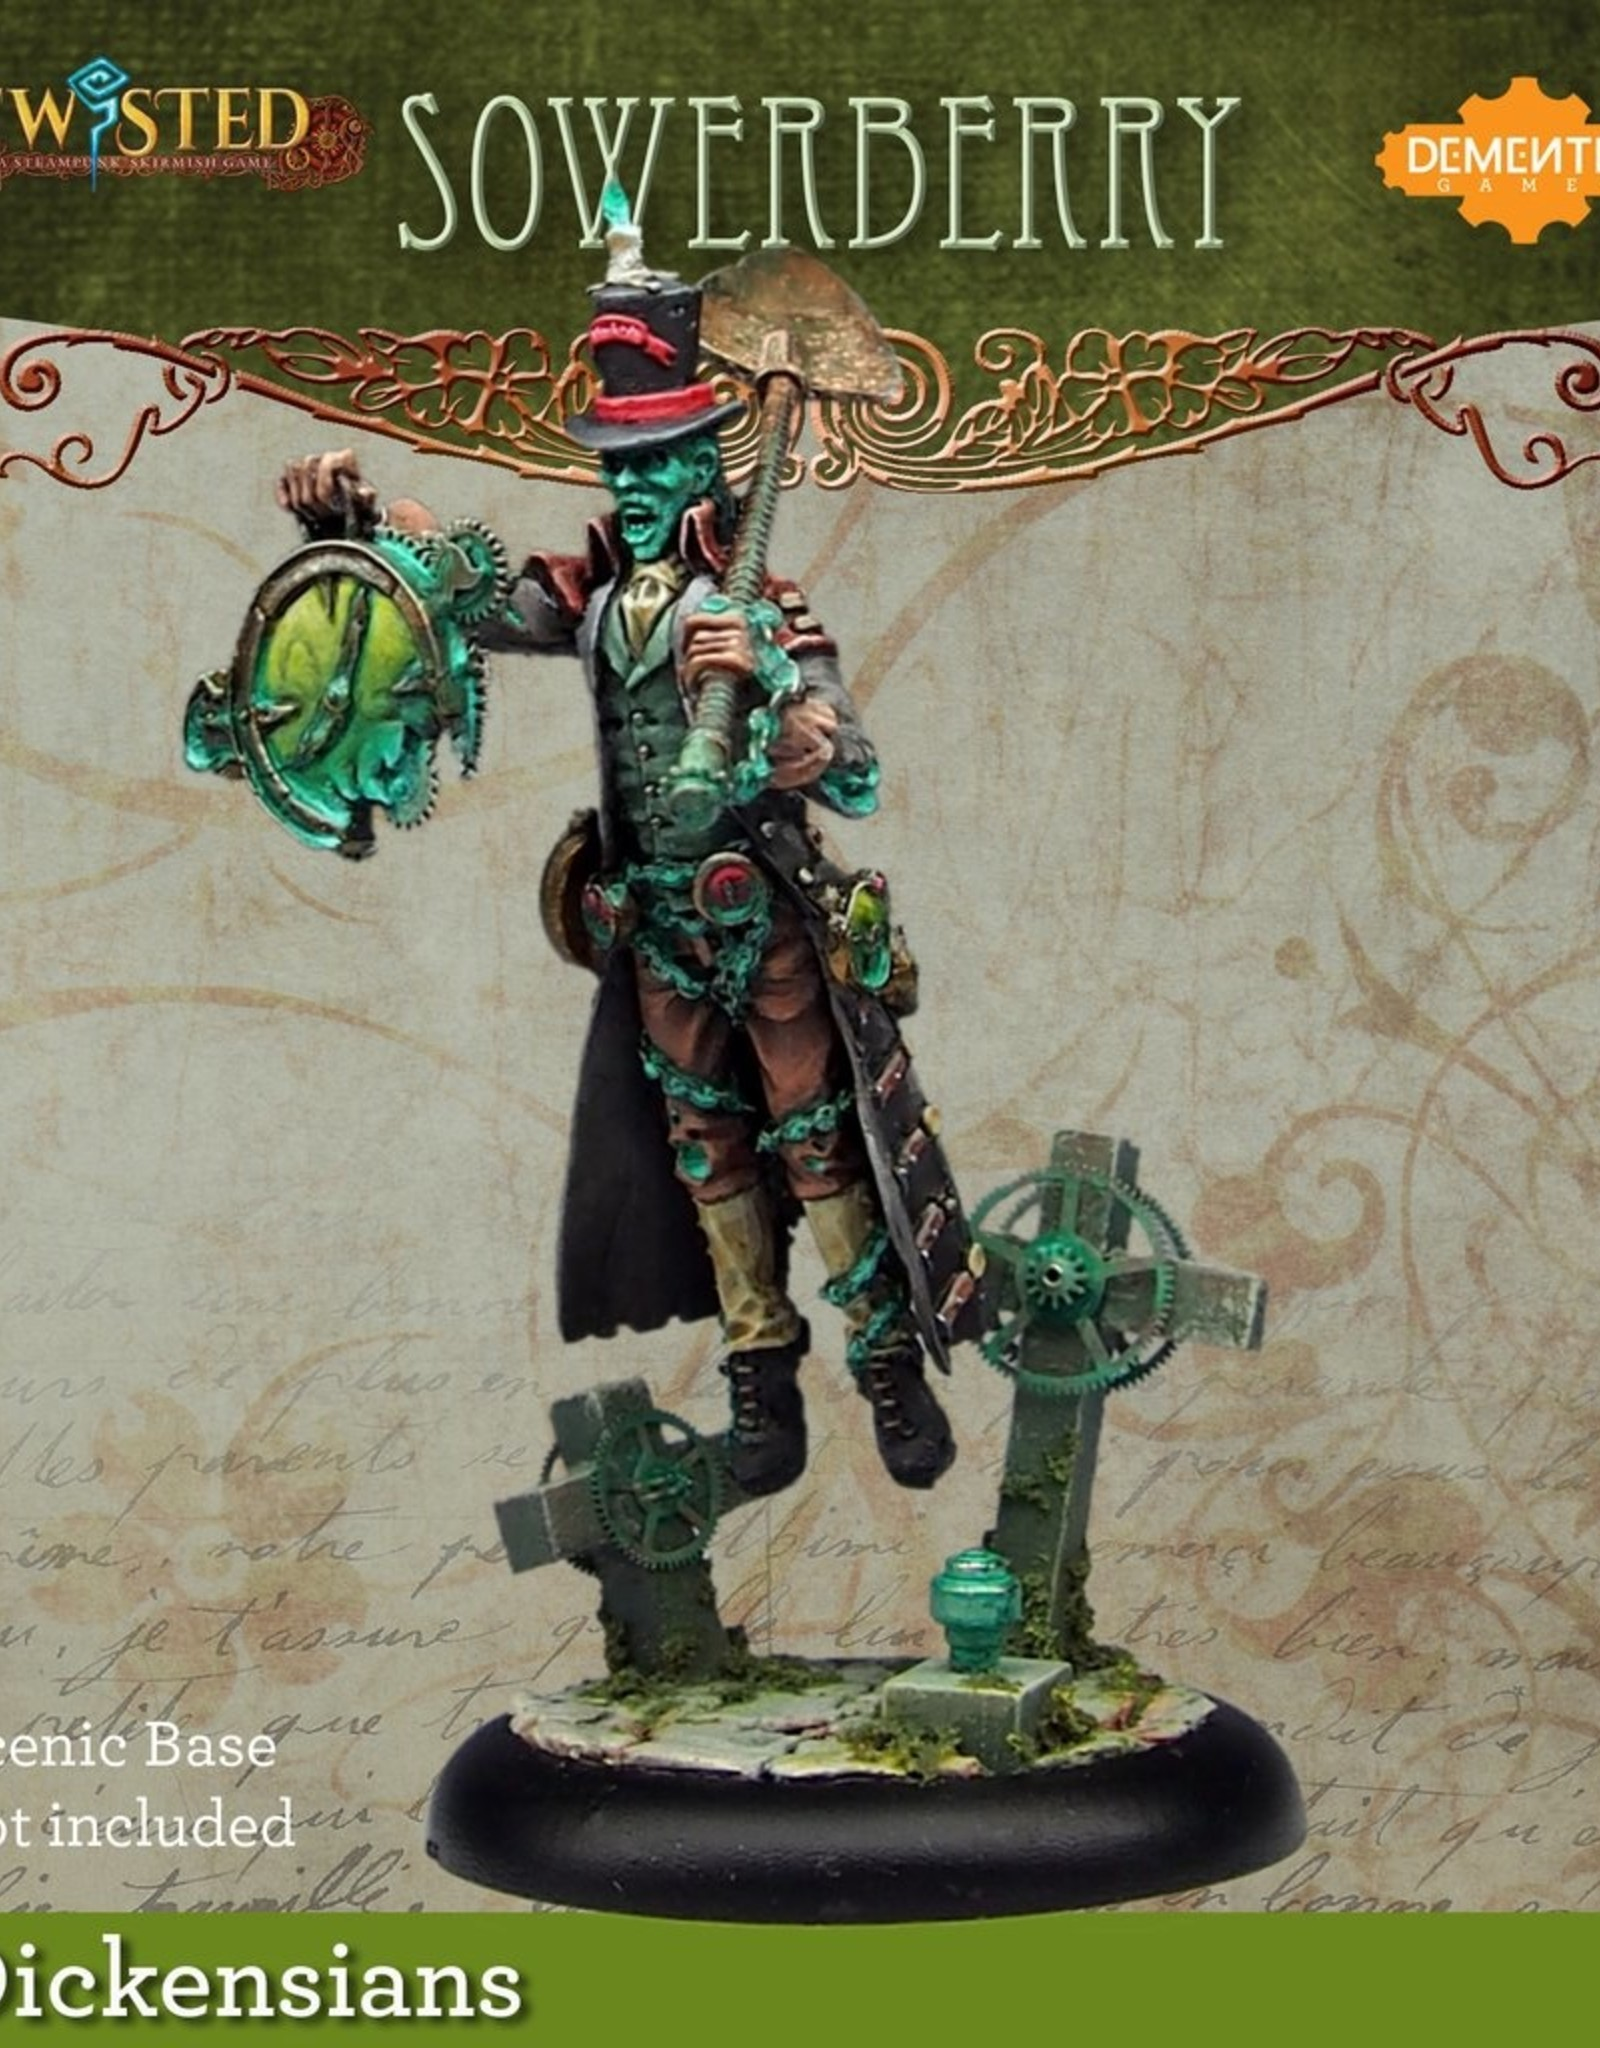 Demented Games Sowerberry - Resin